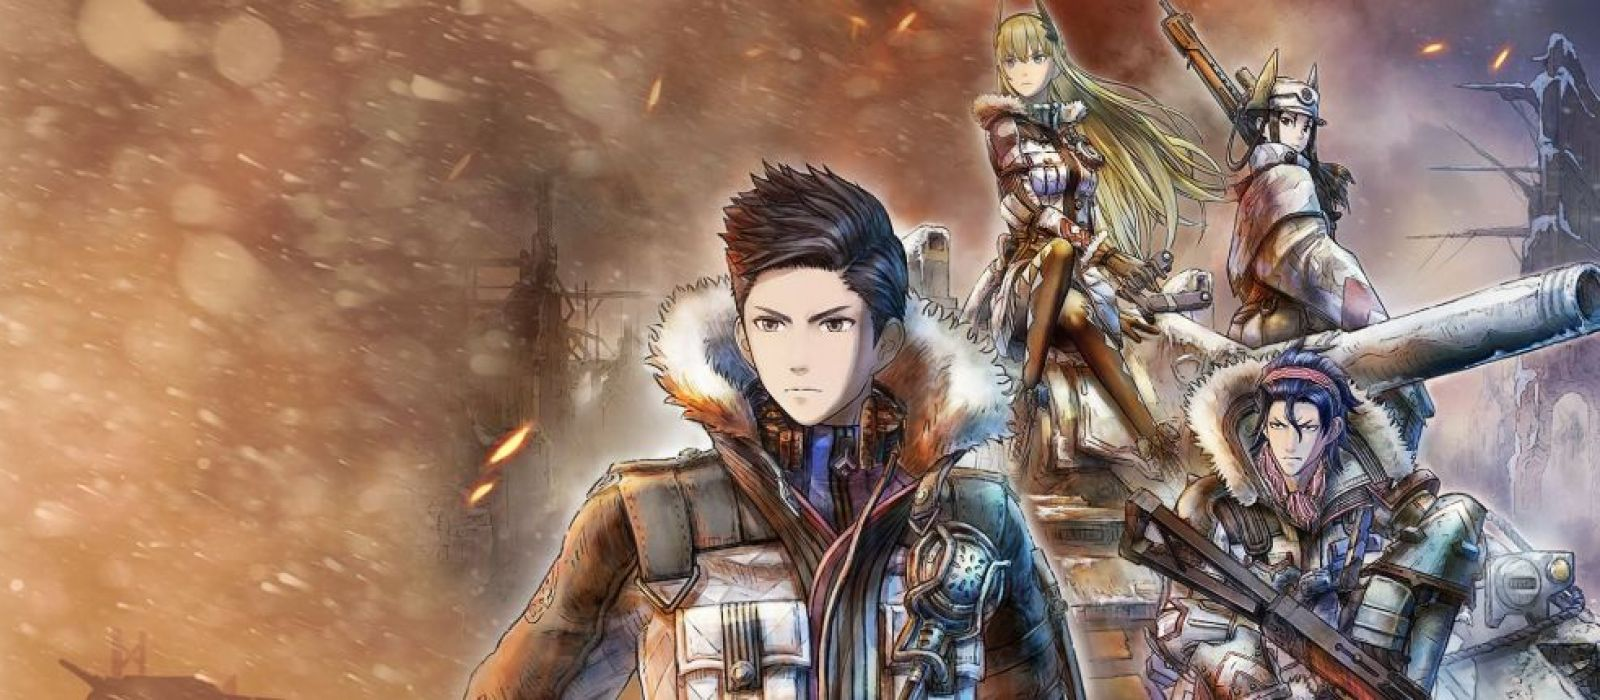 Стрим Valkyria Chronicles 4 — покатили на фронт!